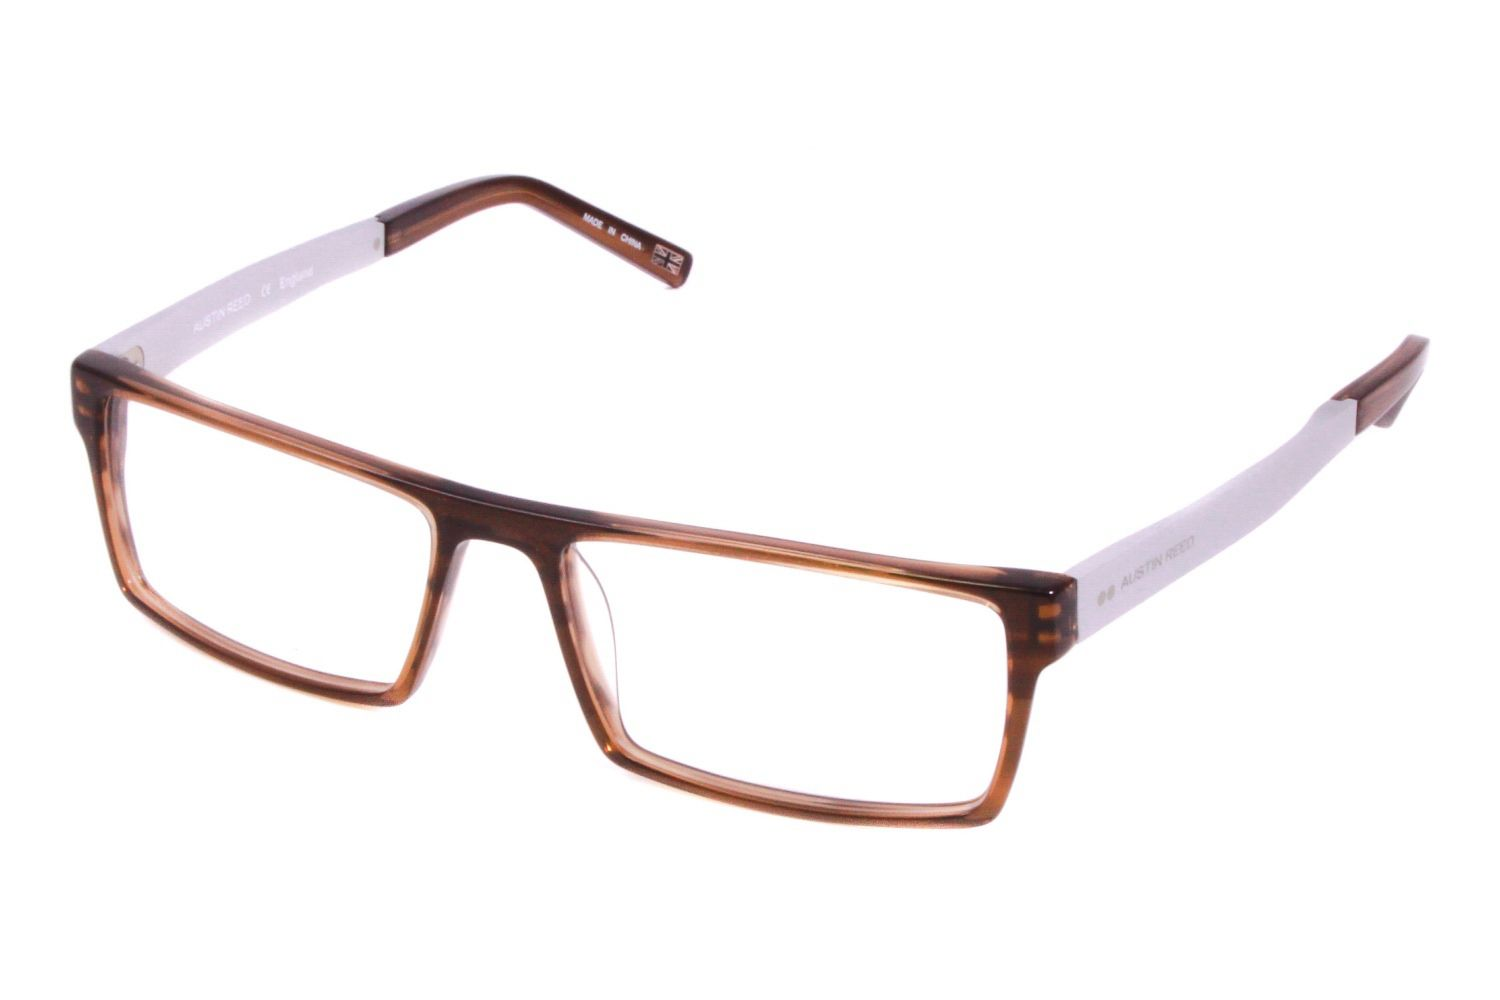 Austin Reed Ar R06 Prescription Eyeglasses Frames Mens Fashion Shoes Fashion Shoes Mens Fashion